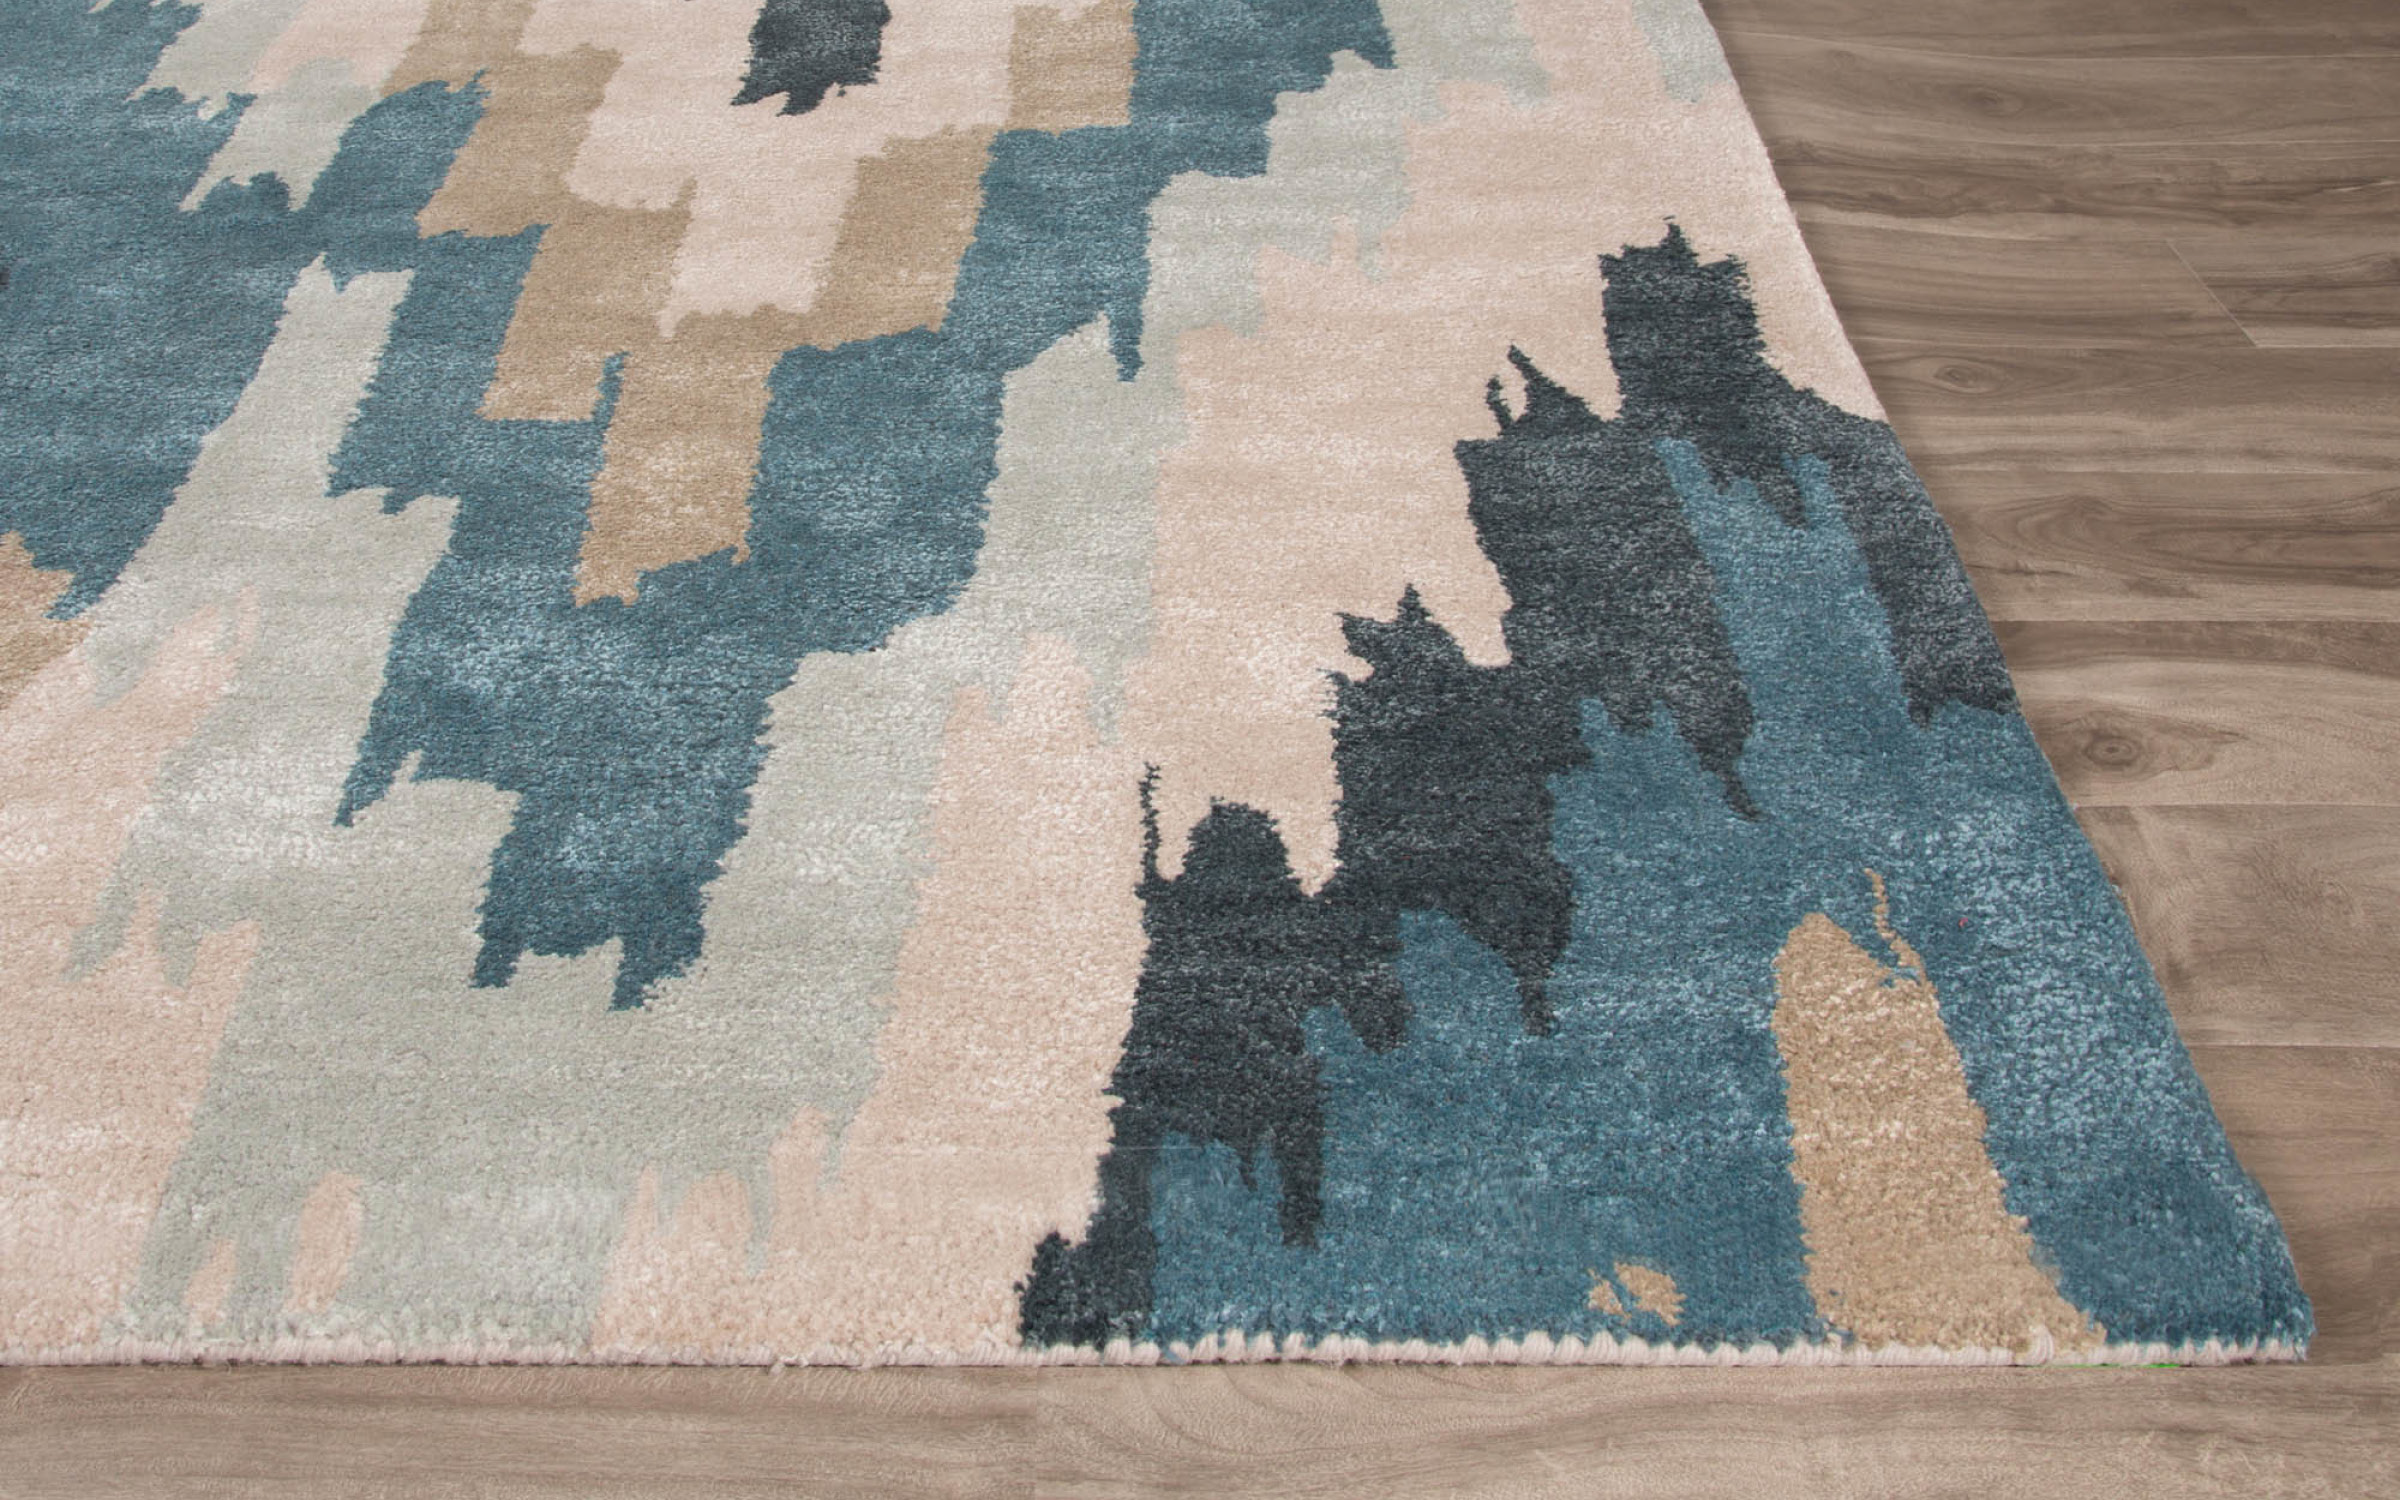 Geometric Woven Area Rug | iFurnish, Frisco, CO